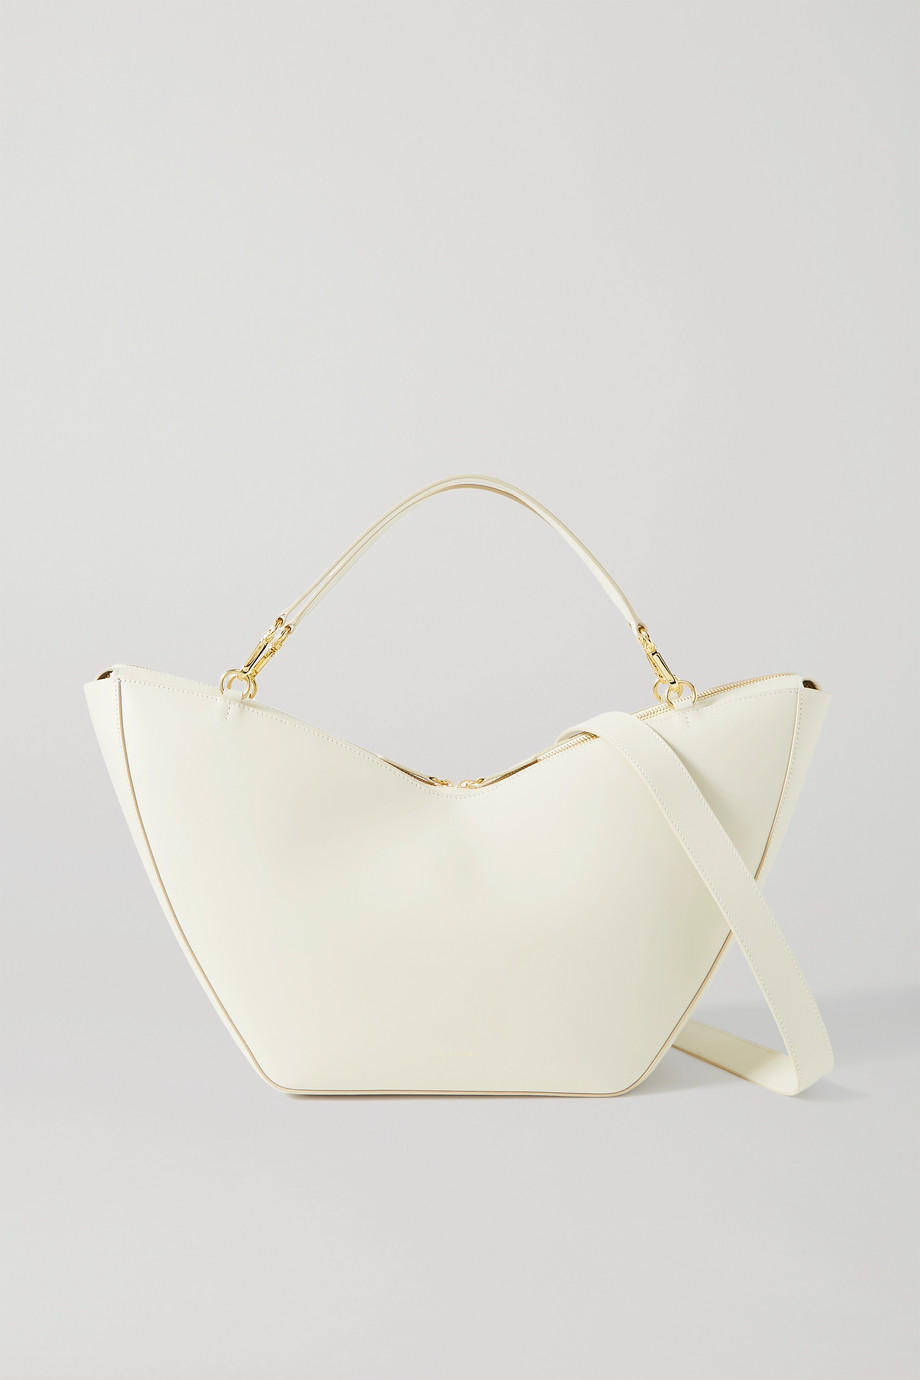 S.Joon Tulip large leather shoulder bag